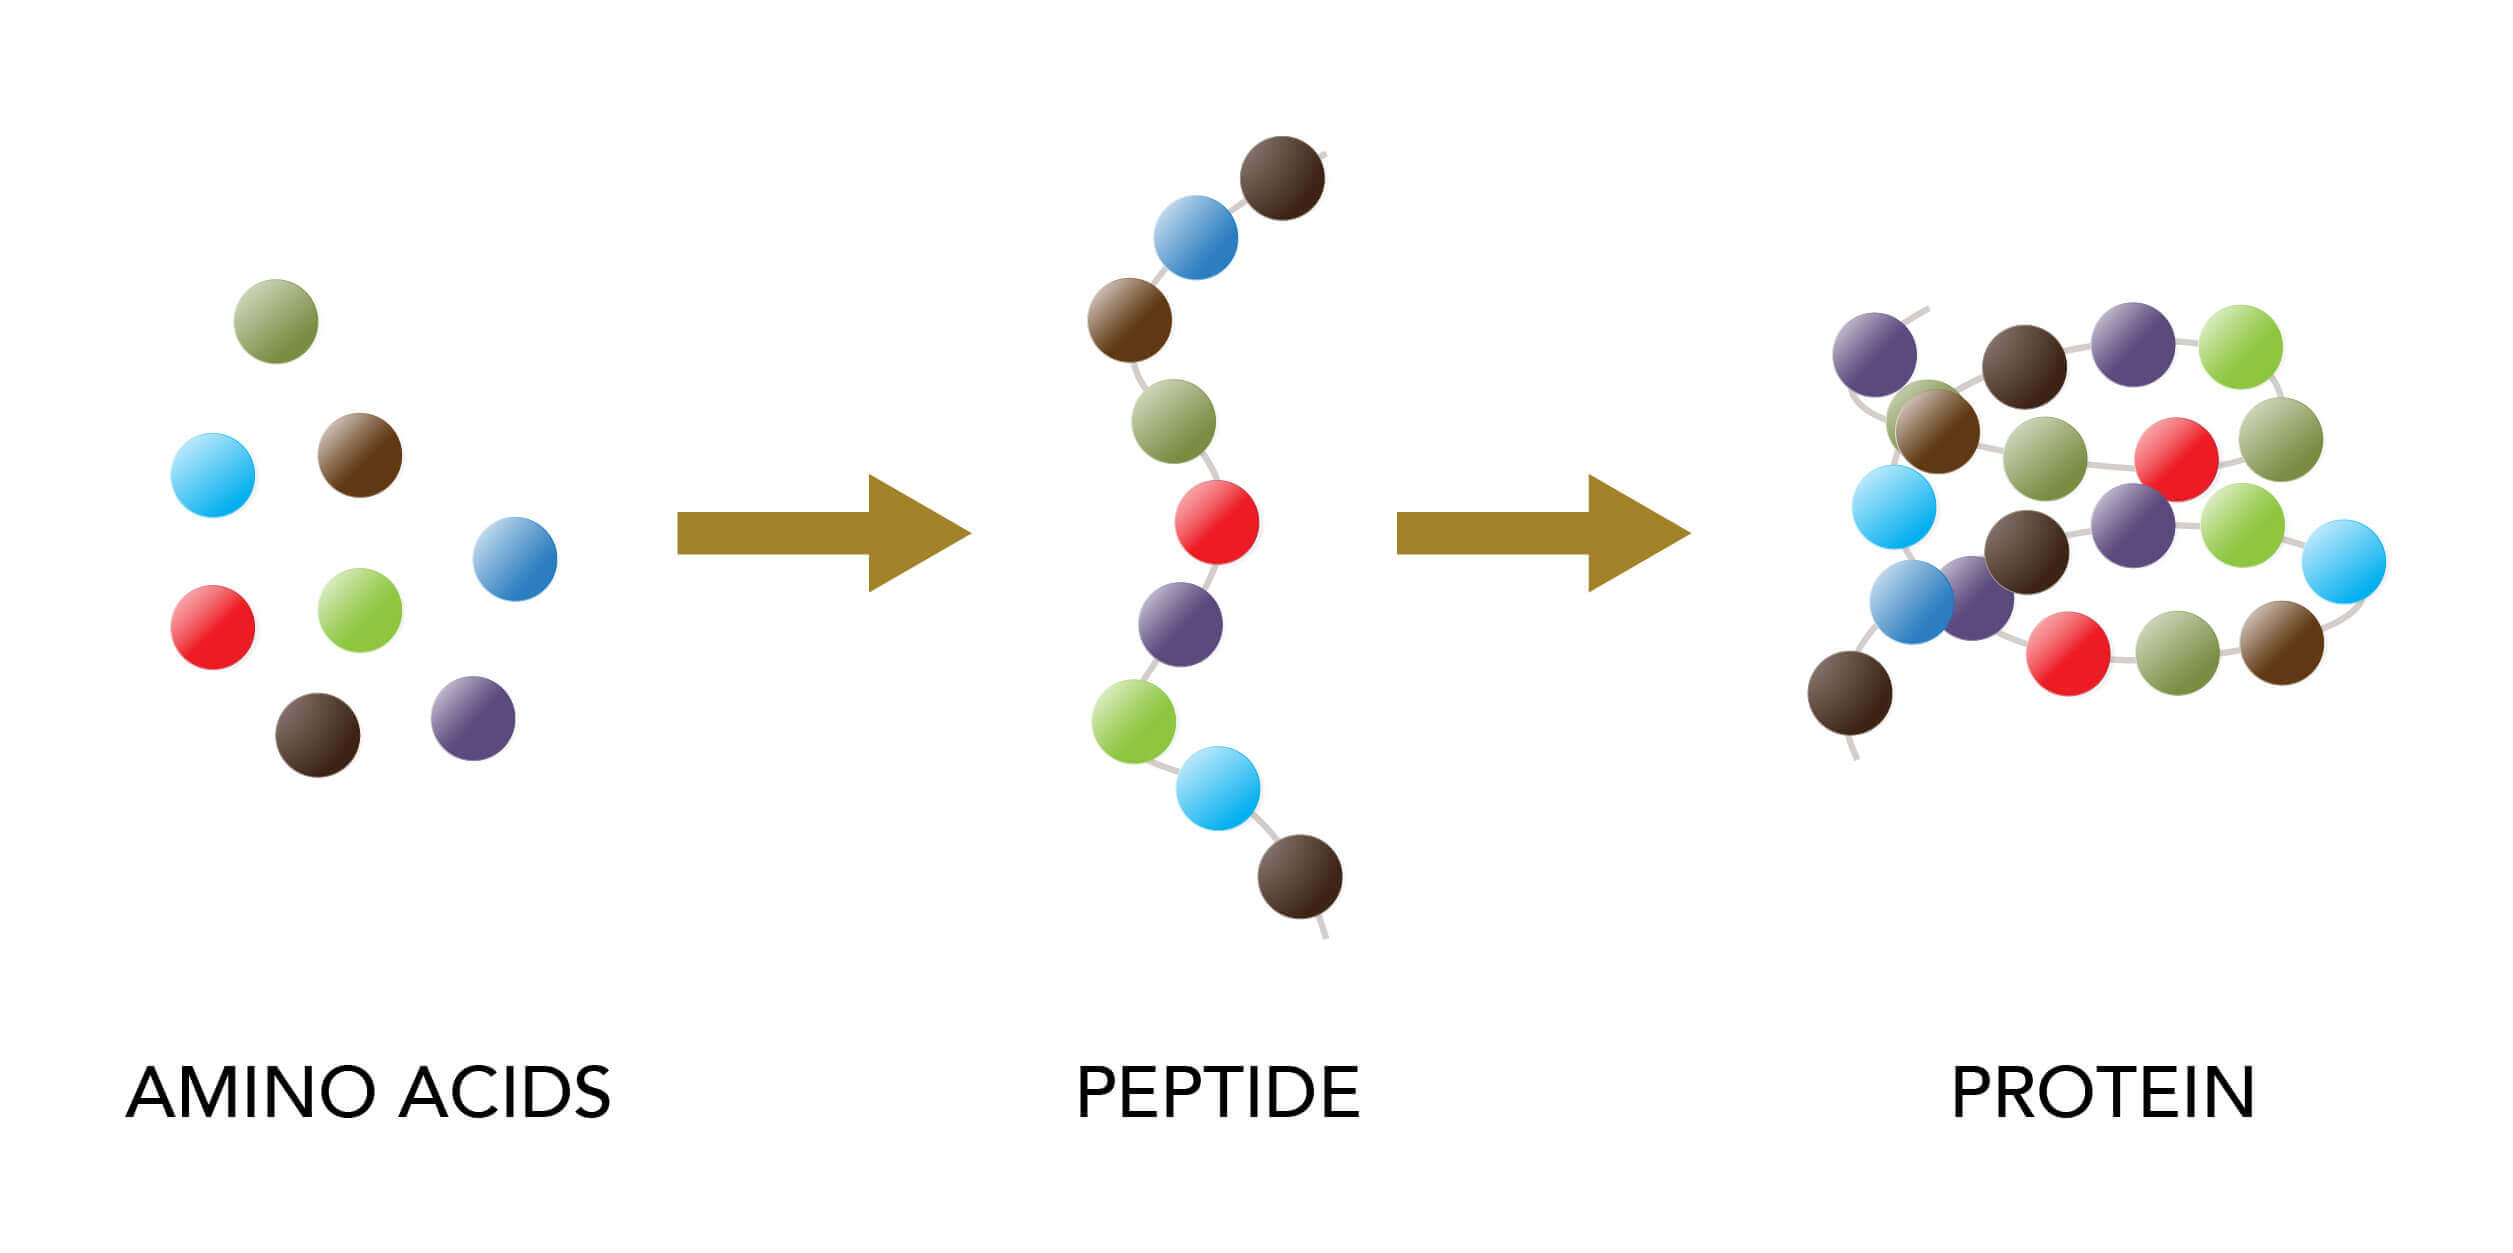 Infographic showing amino acids, peptides and proteins